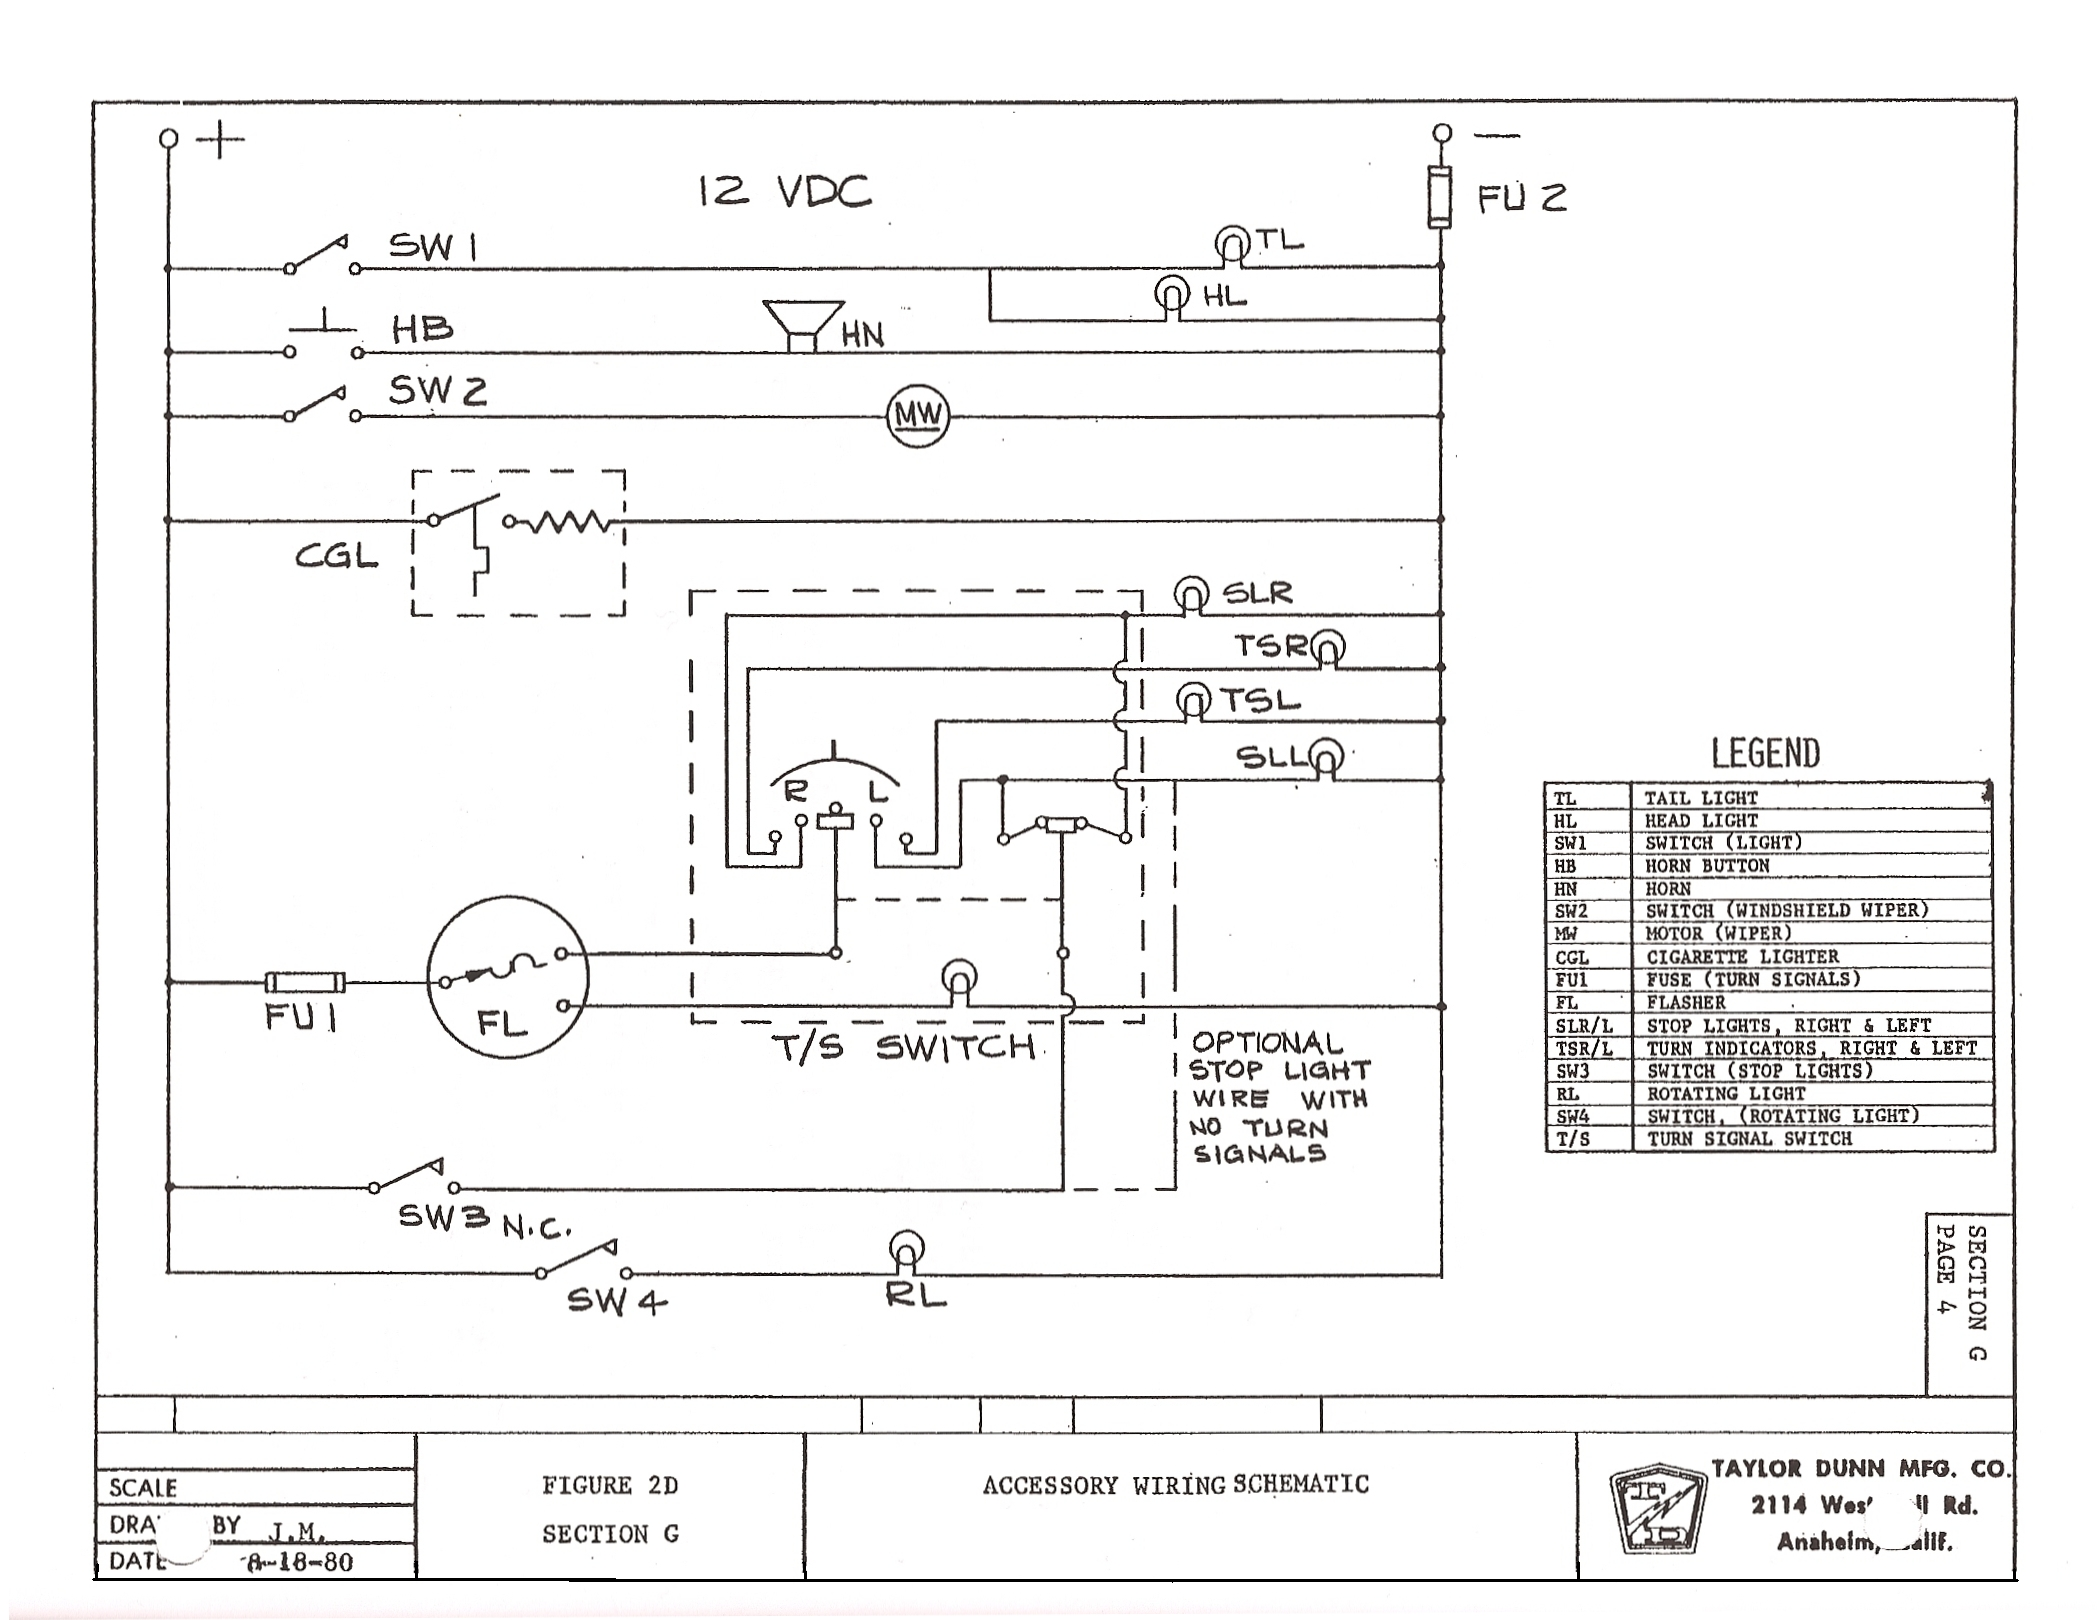 taylor dunn wiring diagram e451 taylor dunn wiring diagram ignition